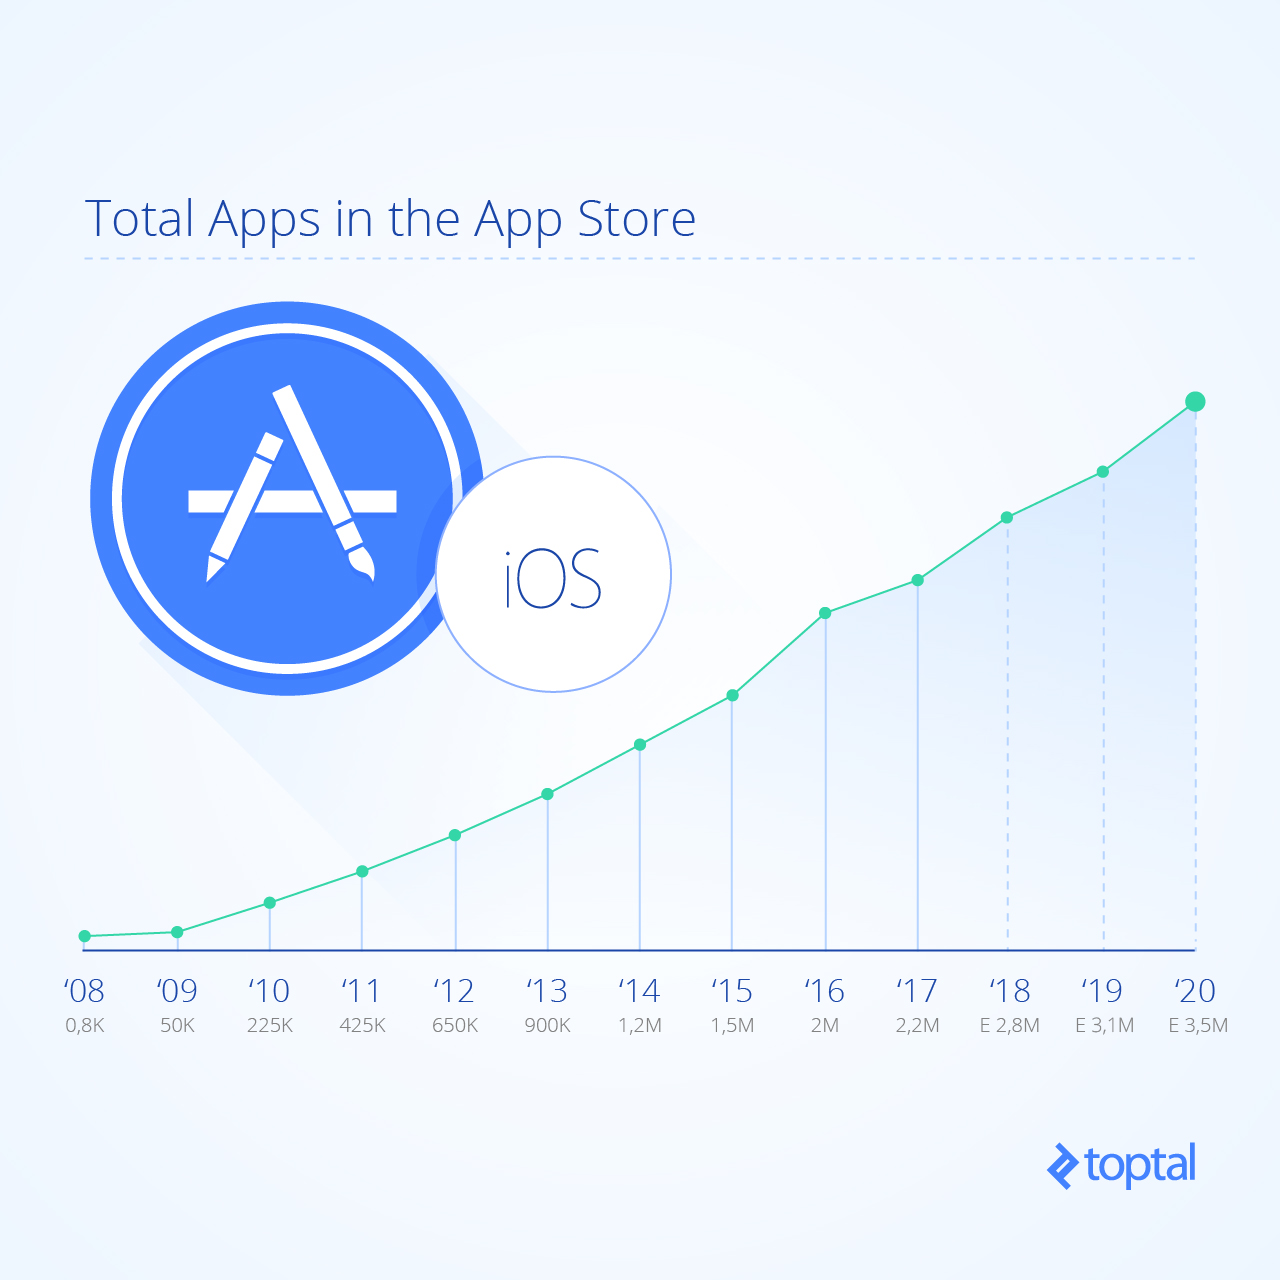 Graph showing the number of active apps in the App Store each year from 2008 projected to 2020.